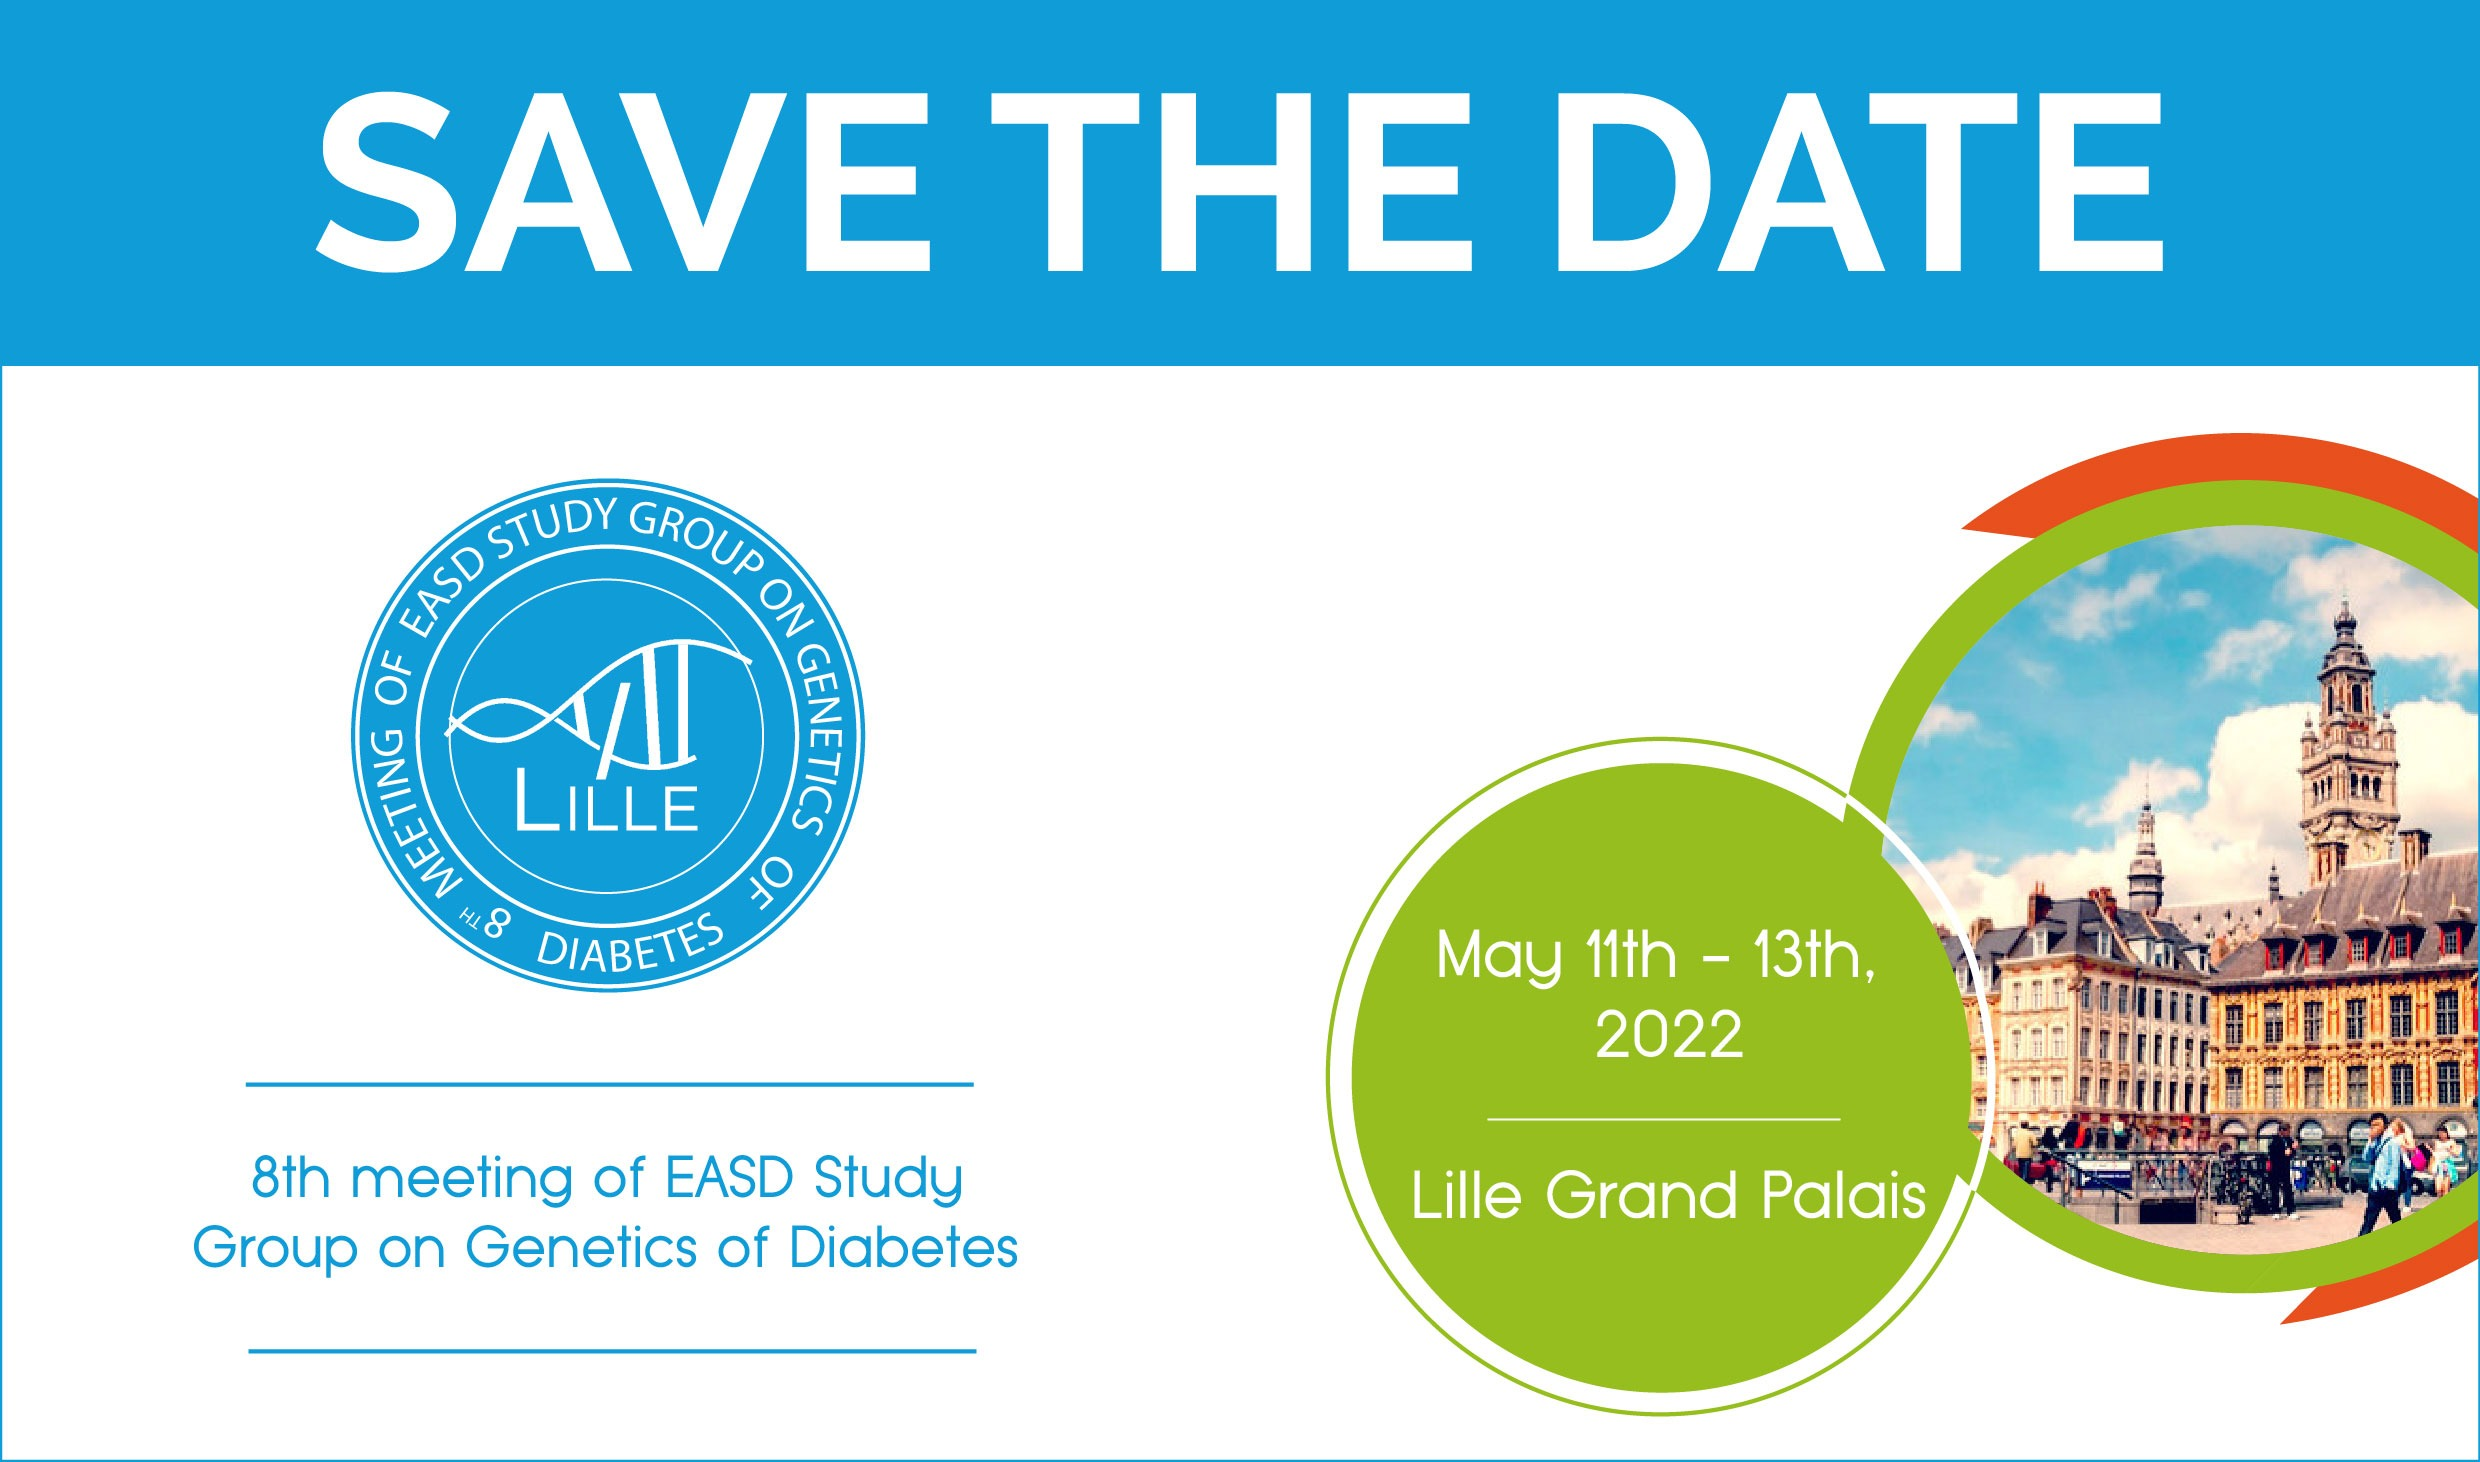 8th Meeting of EASD Study Group on Genetics of Diabetes